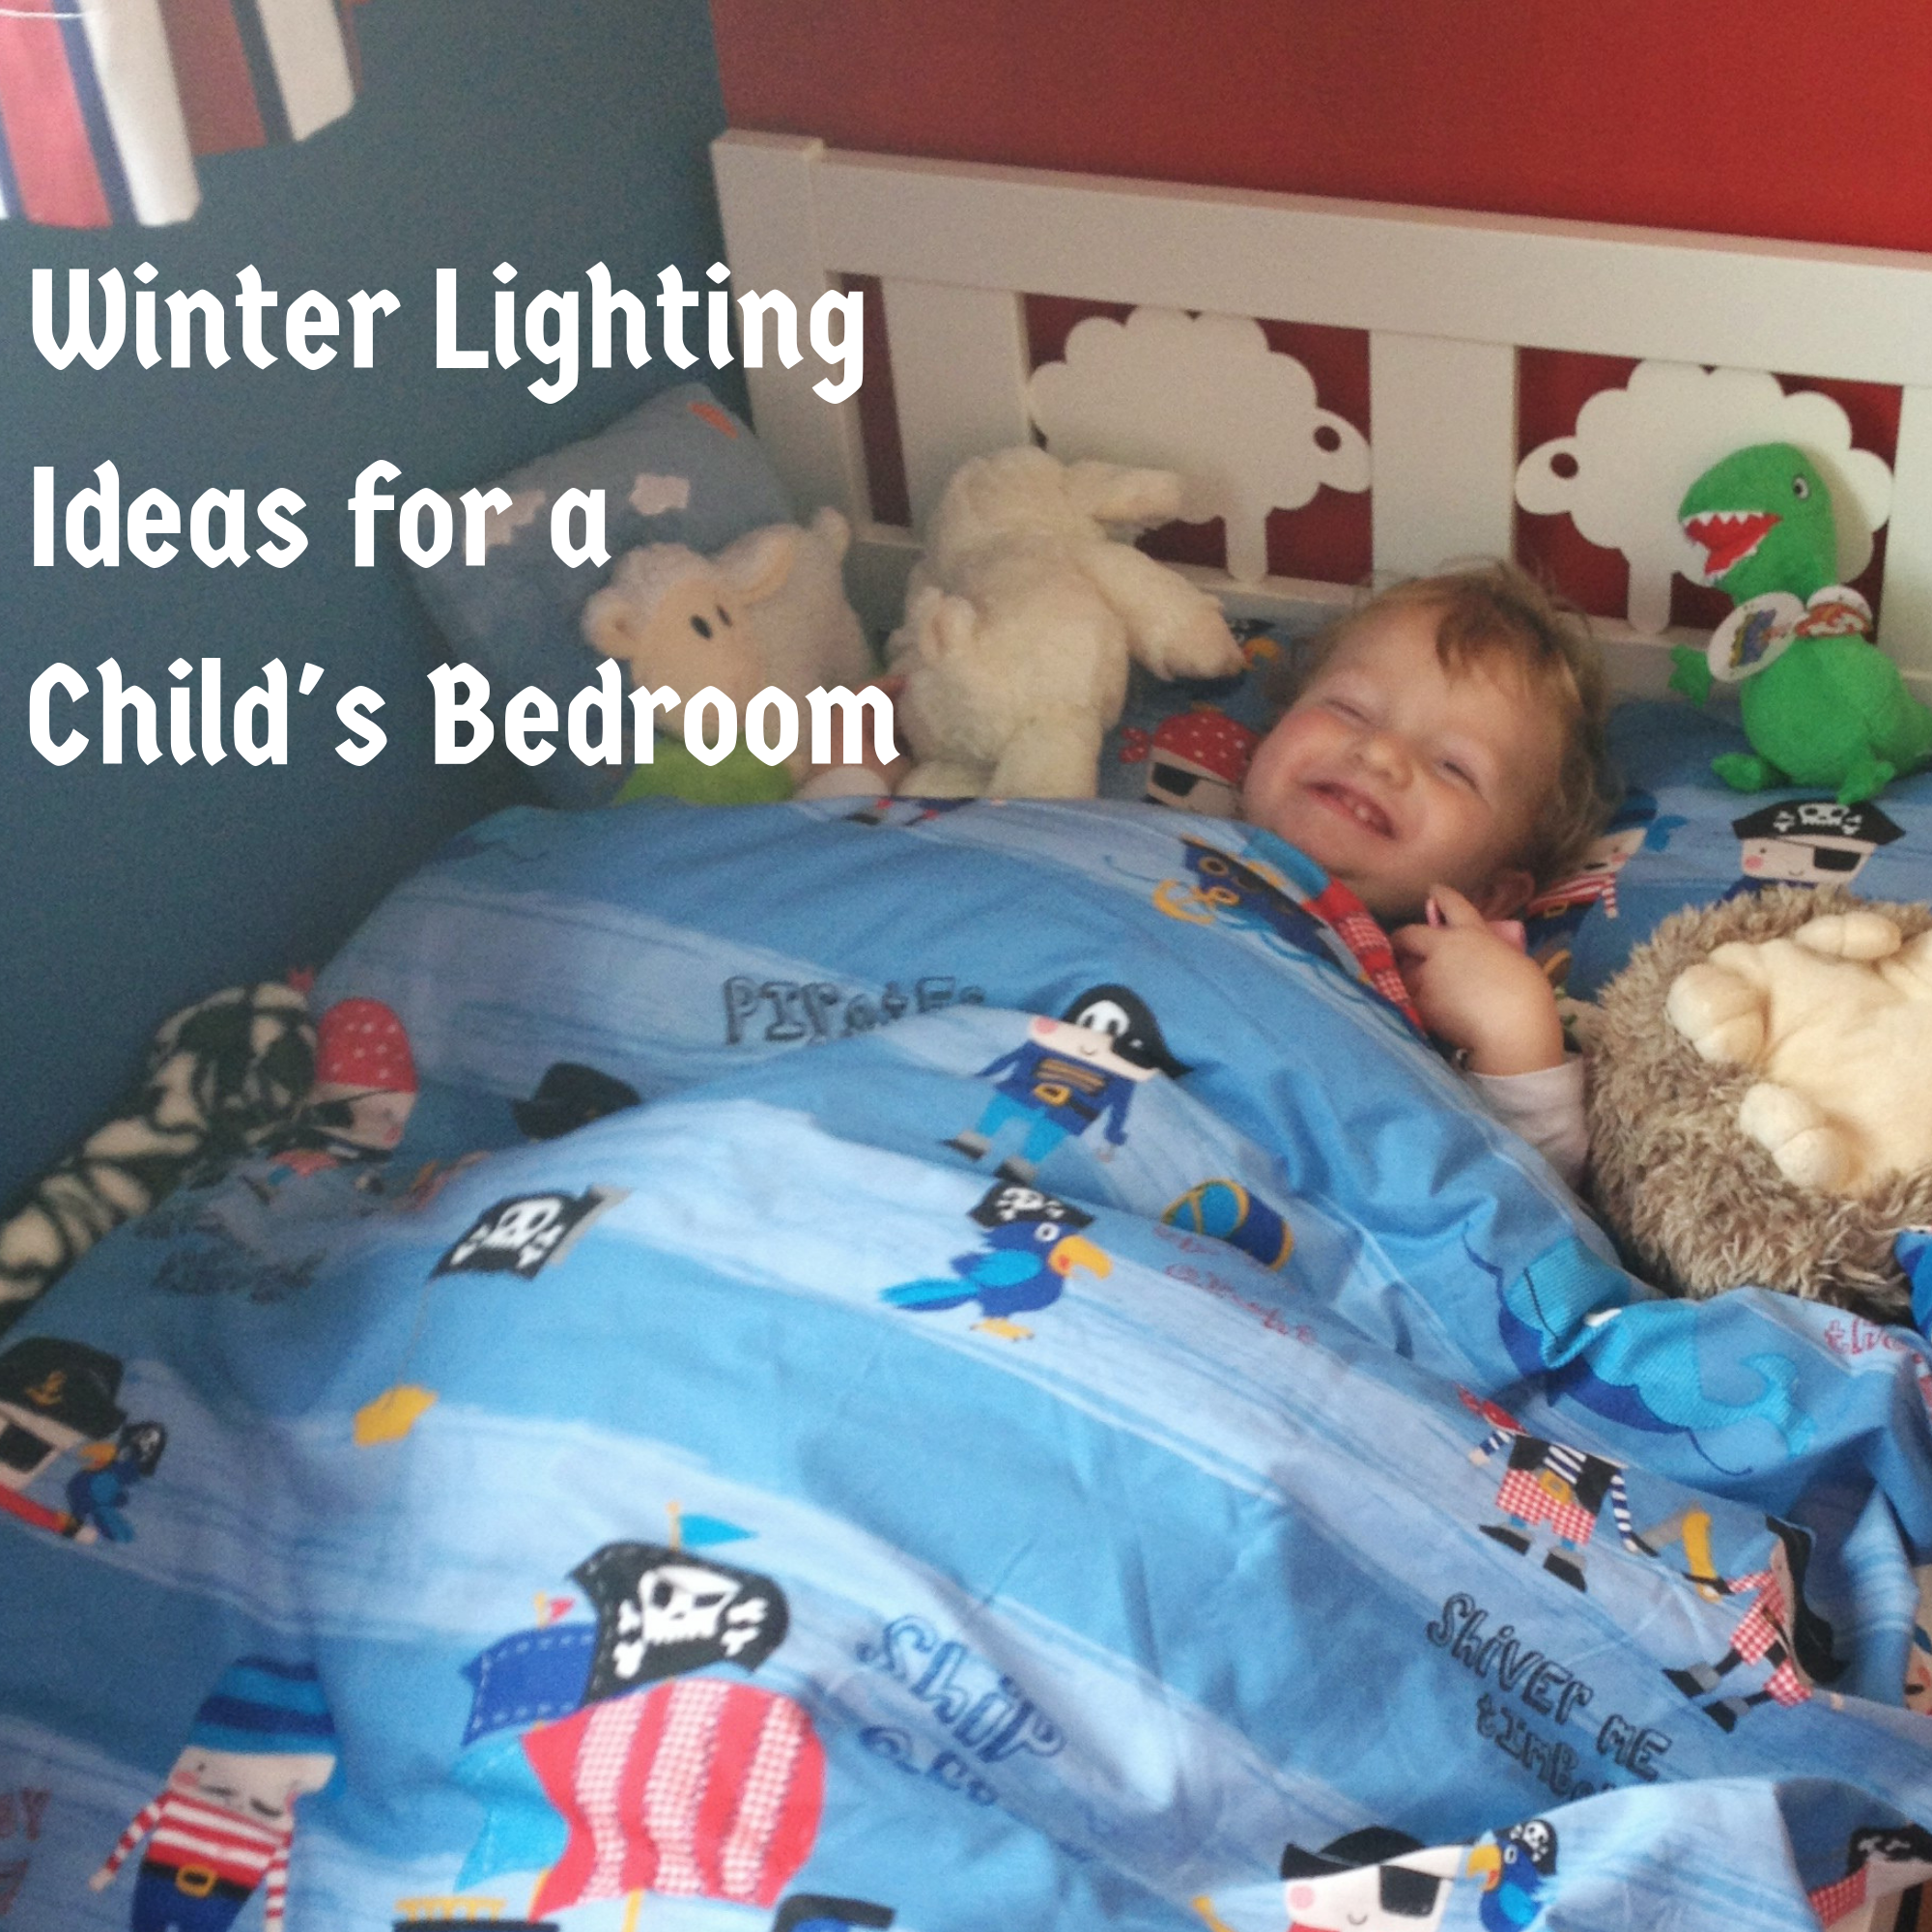 Winter Lighting Ideas for a Child's Bedroom